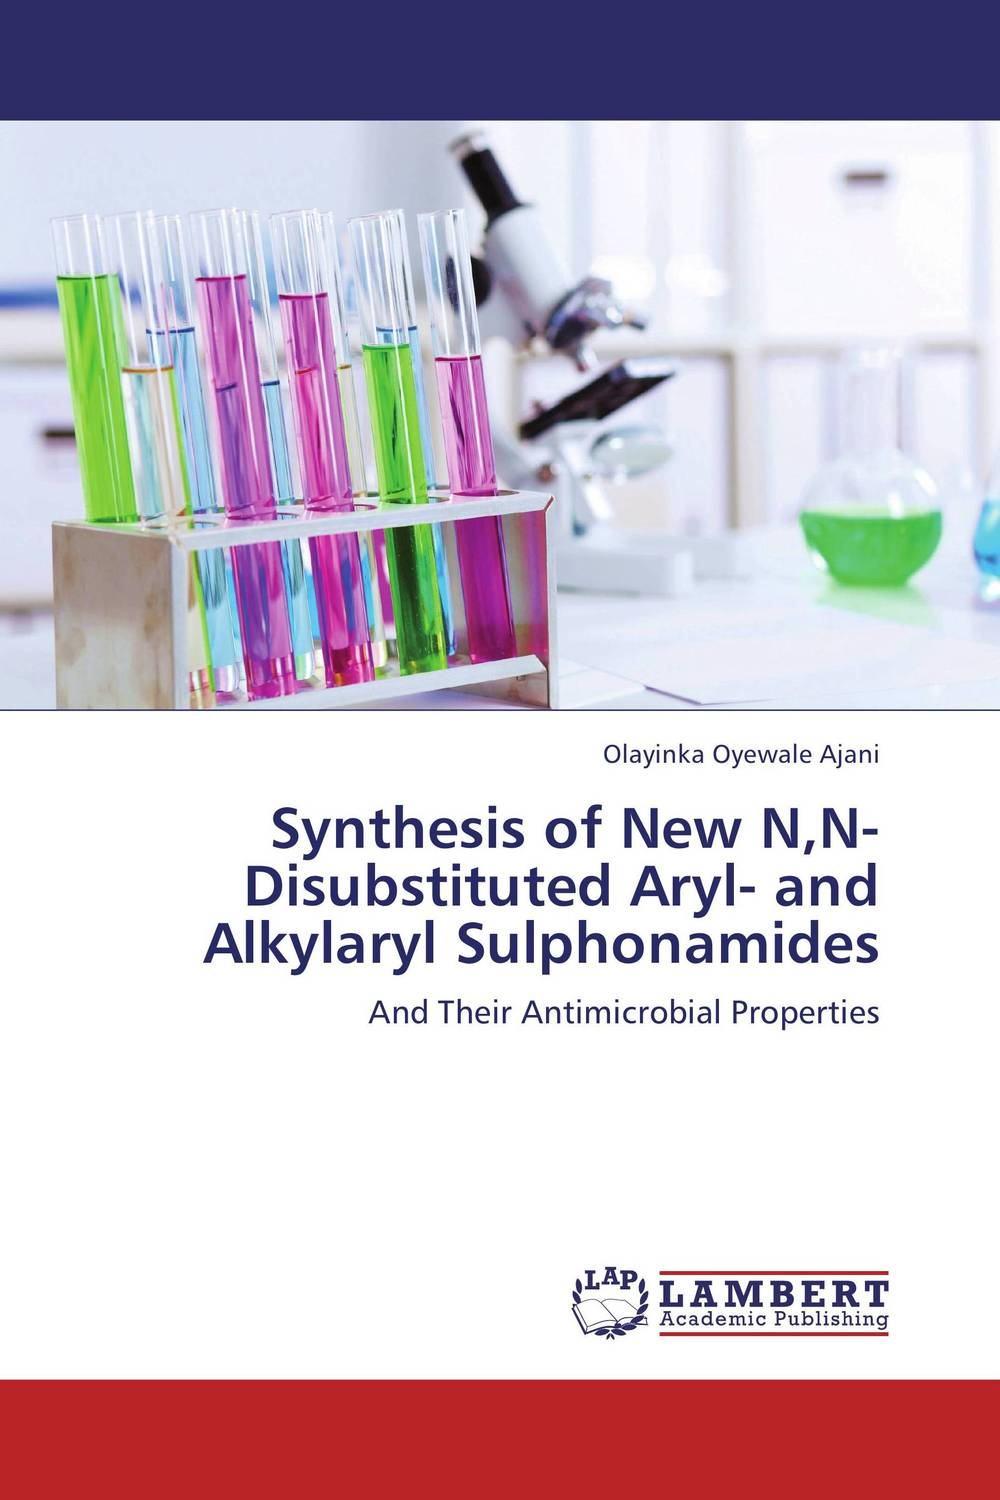 Synthesis of New N,N-Disubstituted Aryl- and Alkylaryl Sulphonamides ashok yadav r d askhedkar and s k choudhary synthesis and simulation of trolley for patient handling